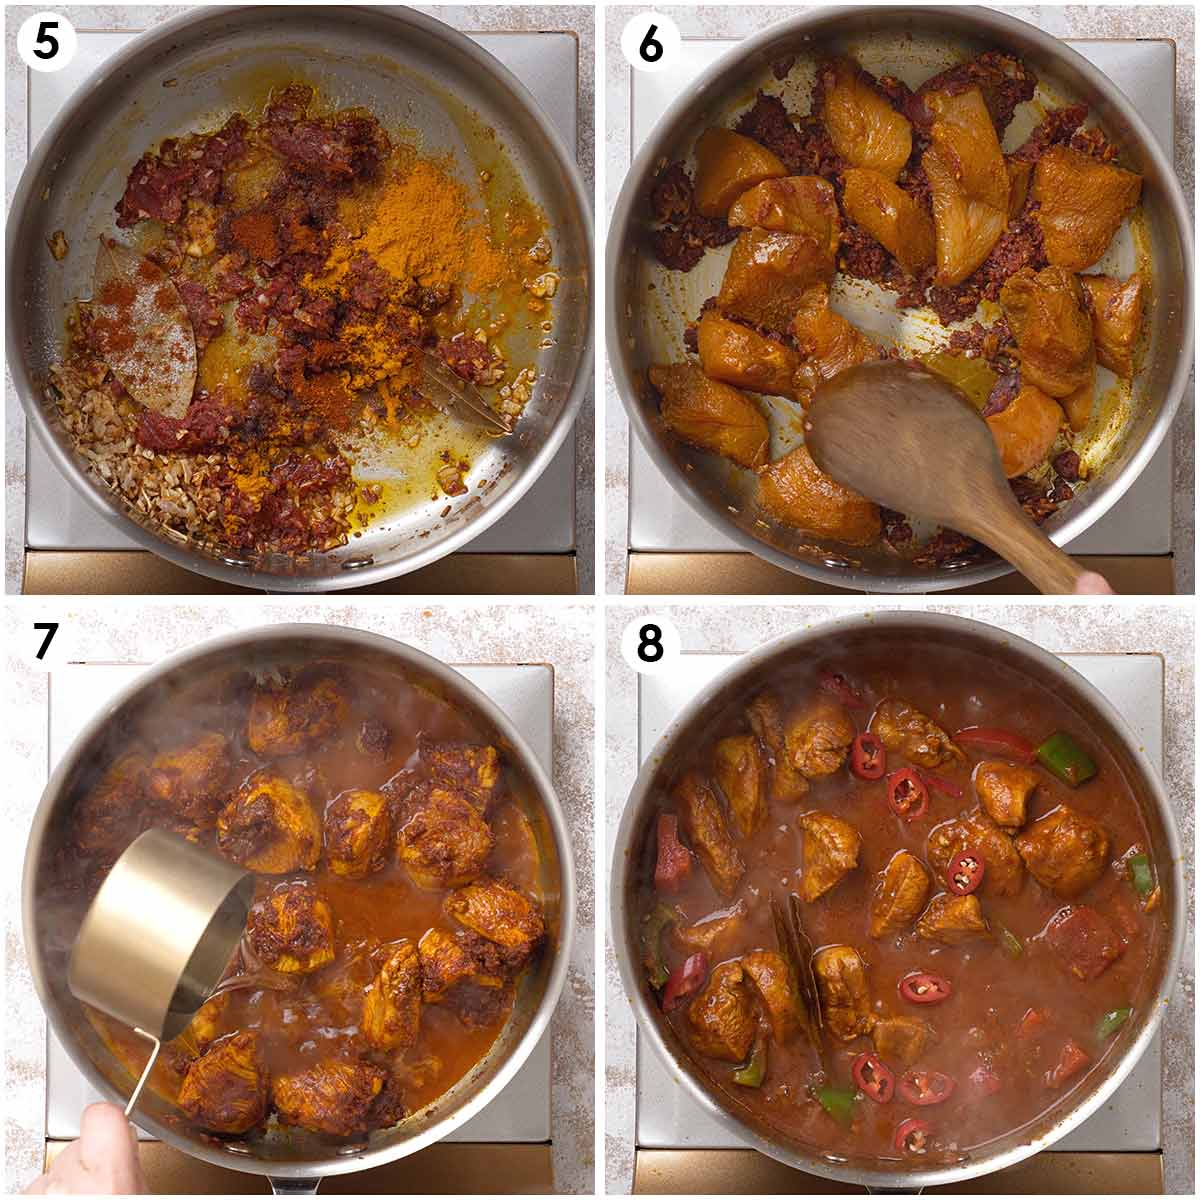 Four image collage showing how to cook chicken curry.